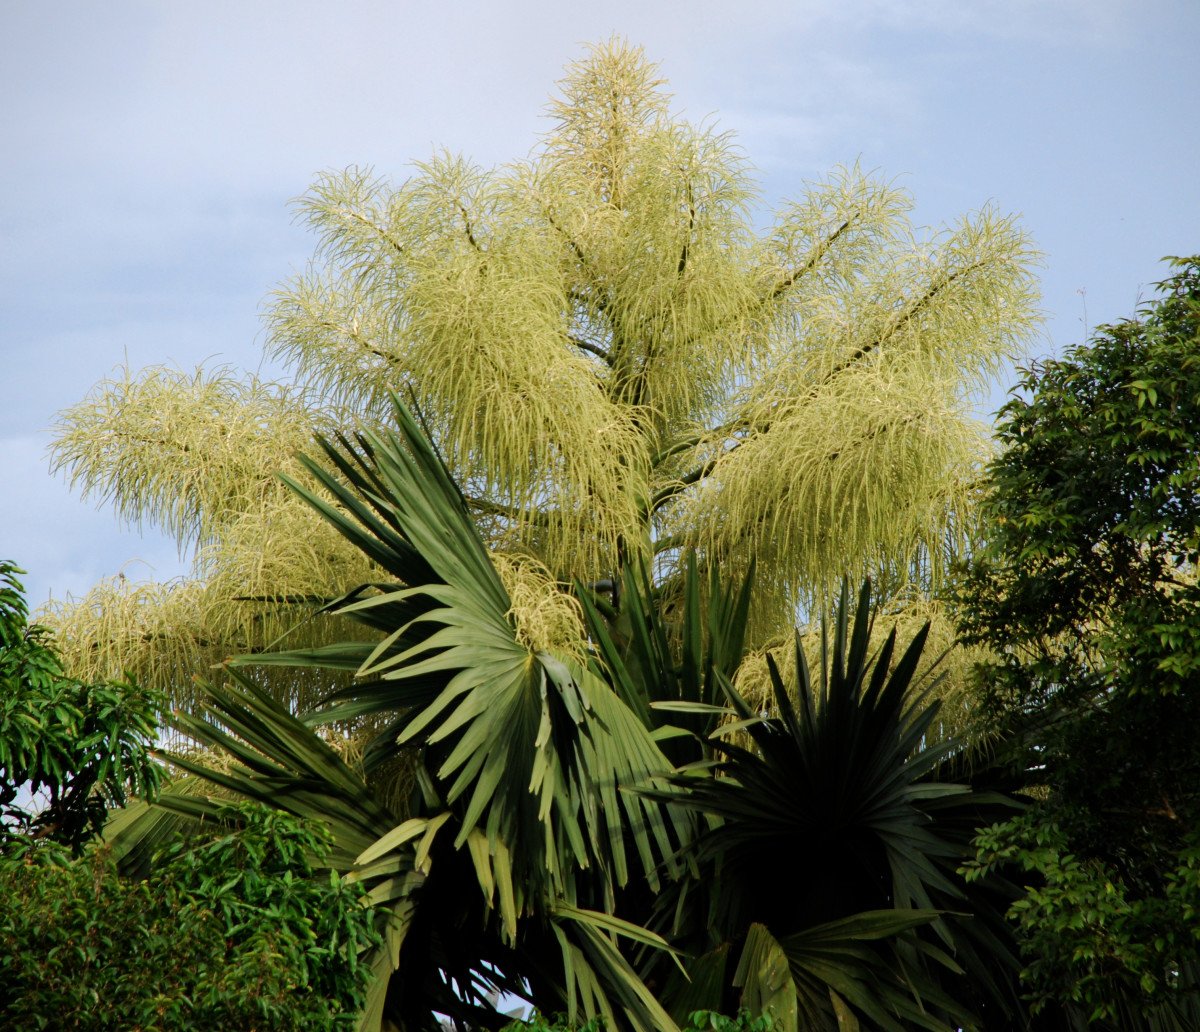 Elegant Palms as Perennial Icons of the Garden